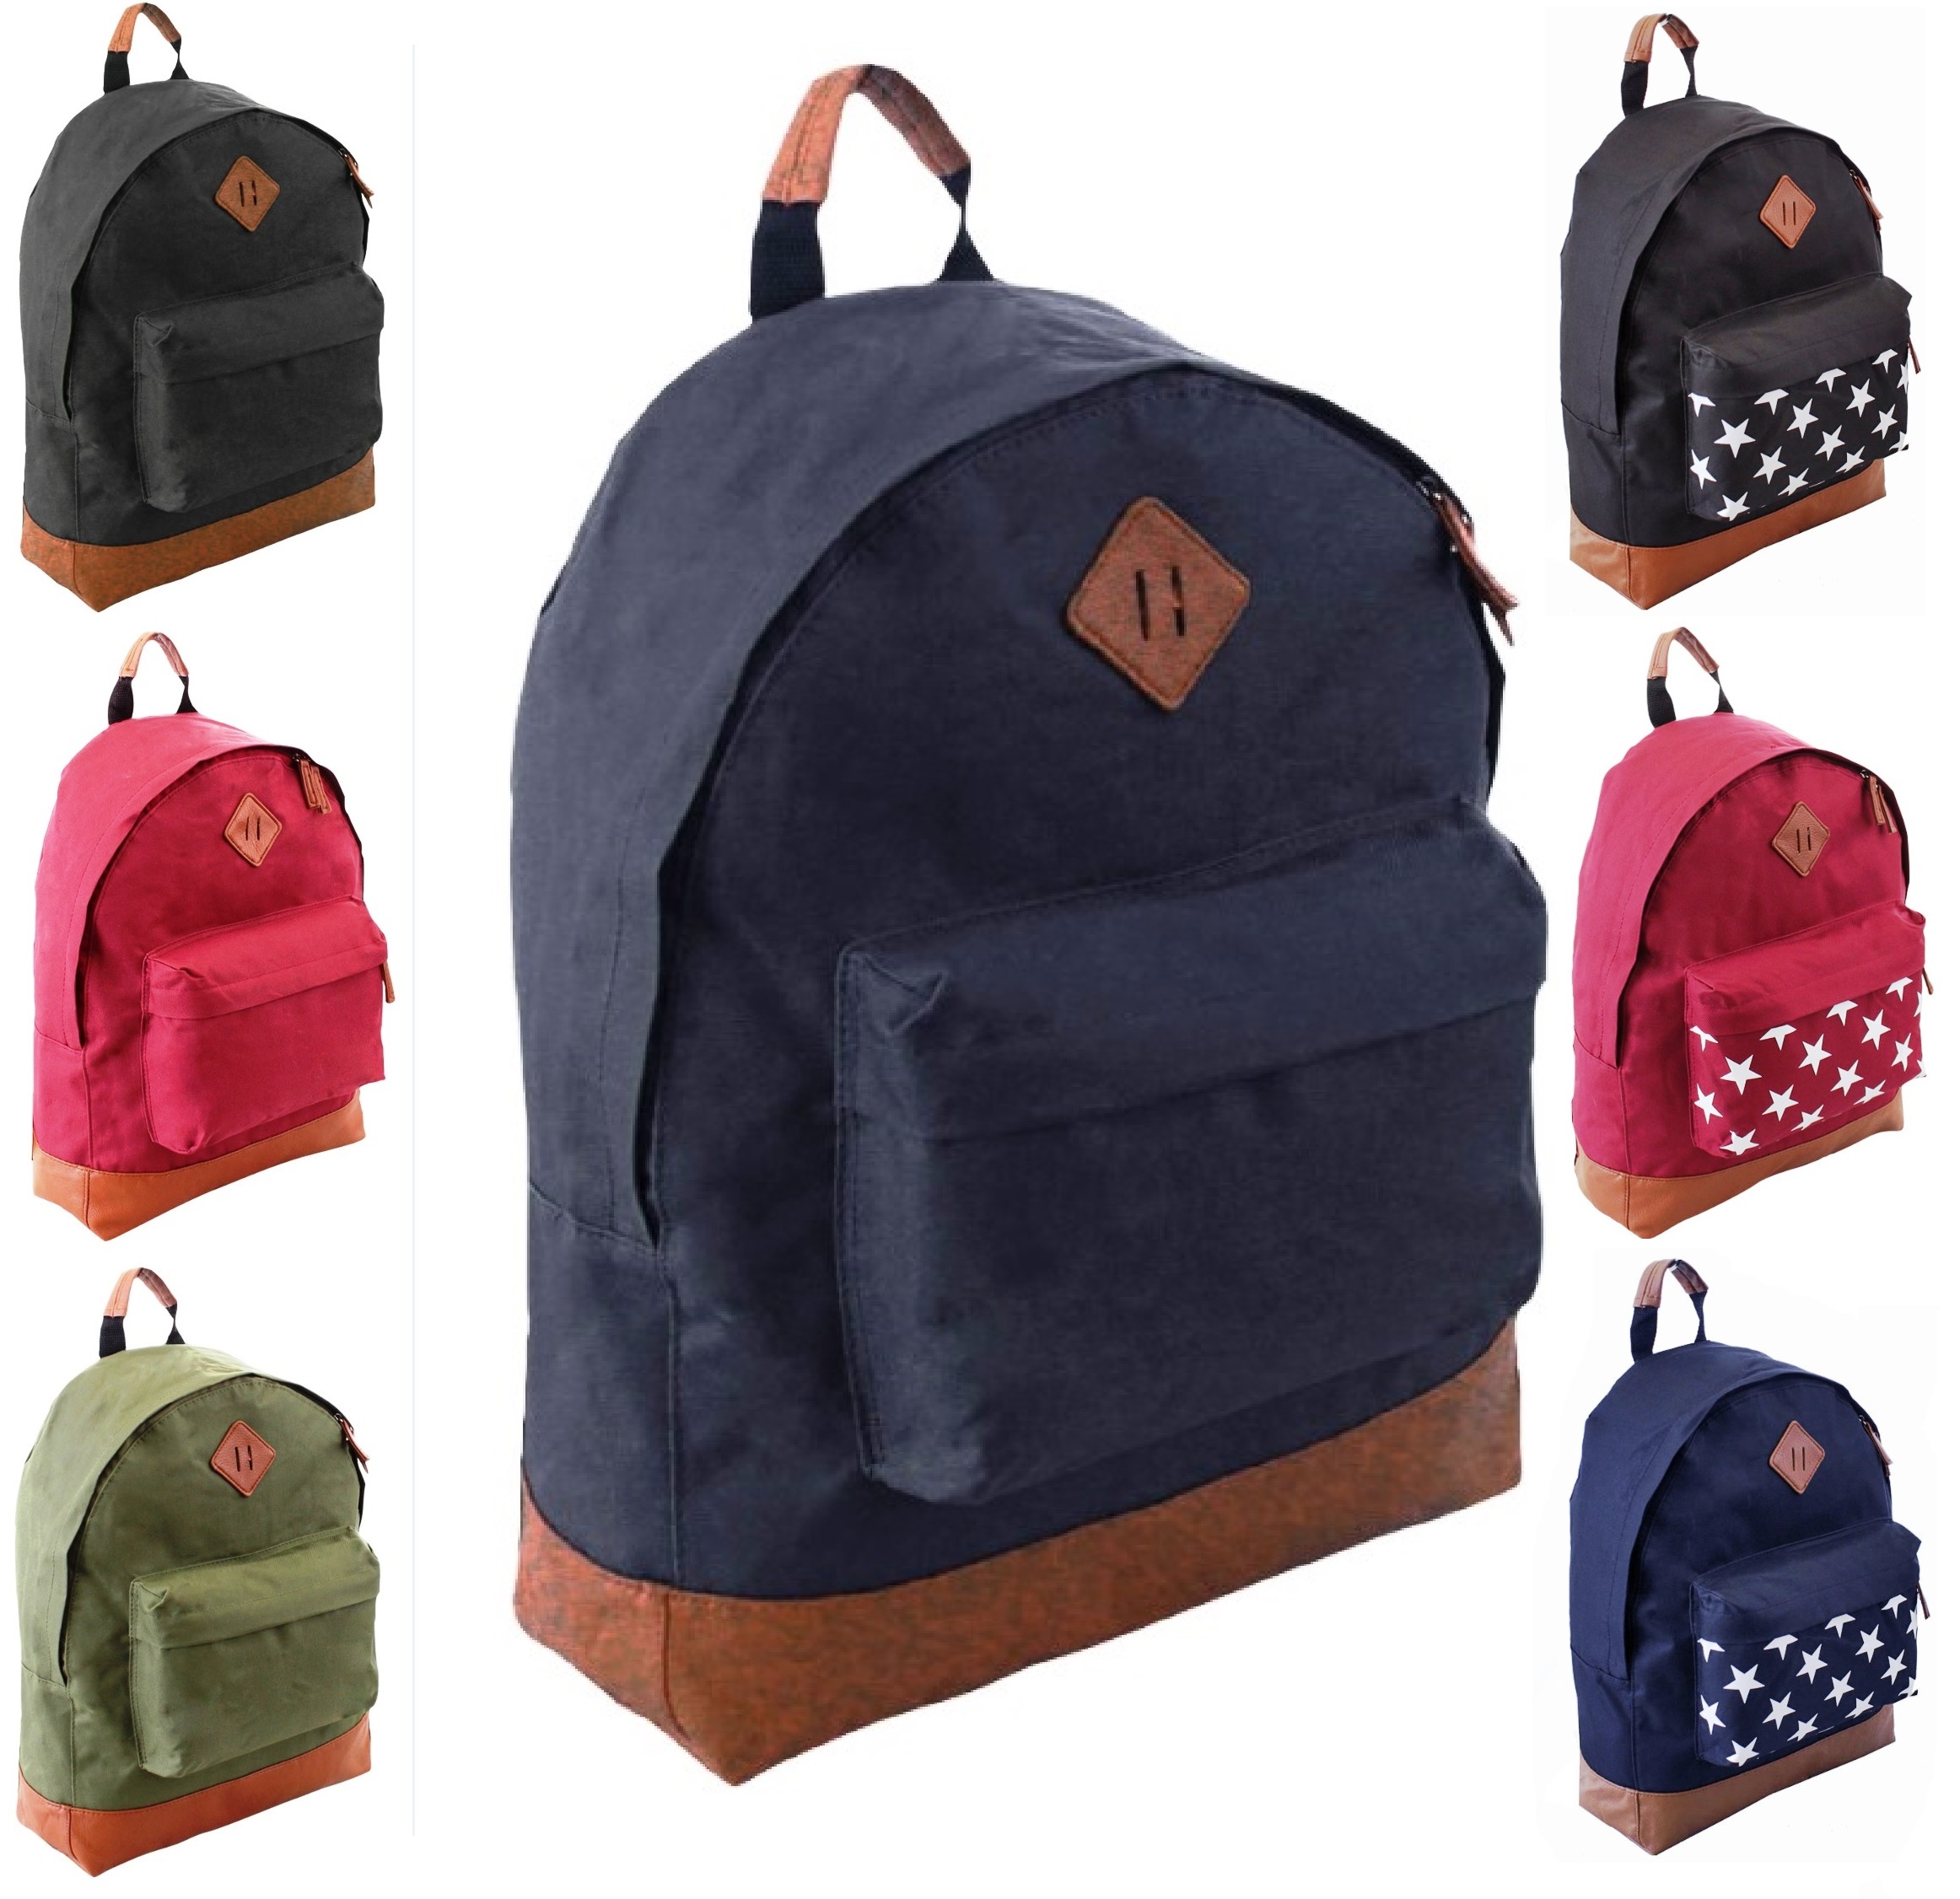 About Boys Backpacks | School Backpacks For Boys Whether you're looking for a bag to carry your books and laptop to school or searching for a way to carry your essentials for an overnight trip or a weekend getaway, we have dozens of boy's backpacks to suit every mood, need, and occasion.